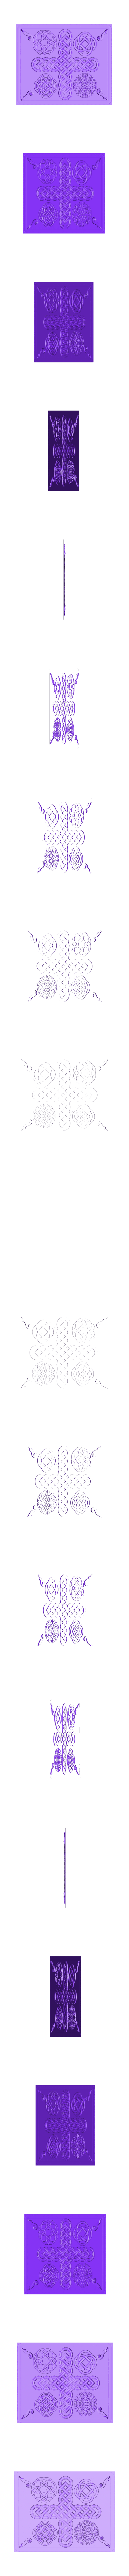 Celtic.stl Download free STL file Celtic Relief Pattern • 3D printable template, Account-Closed